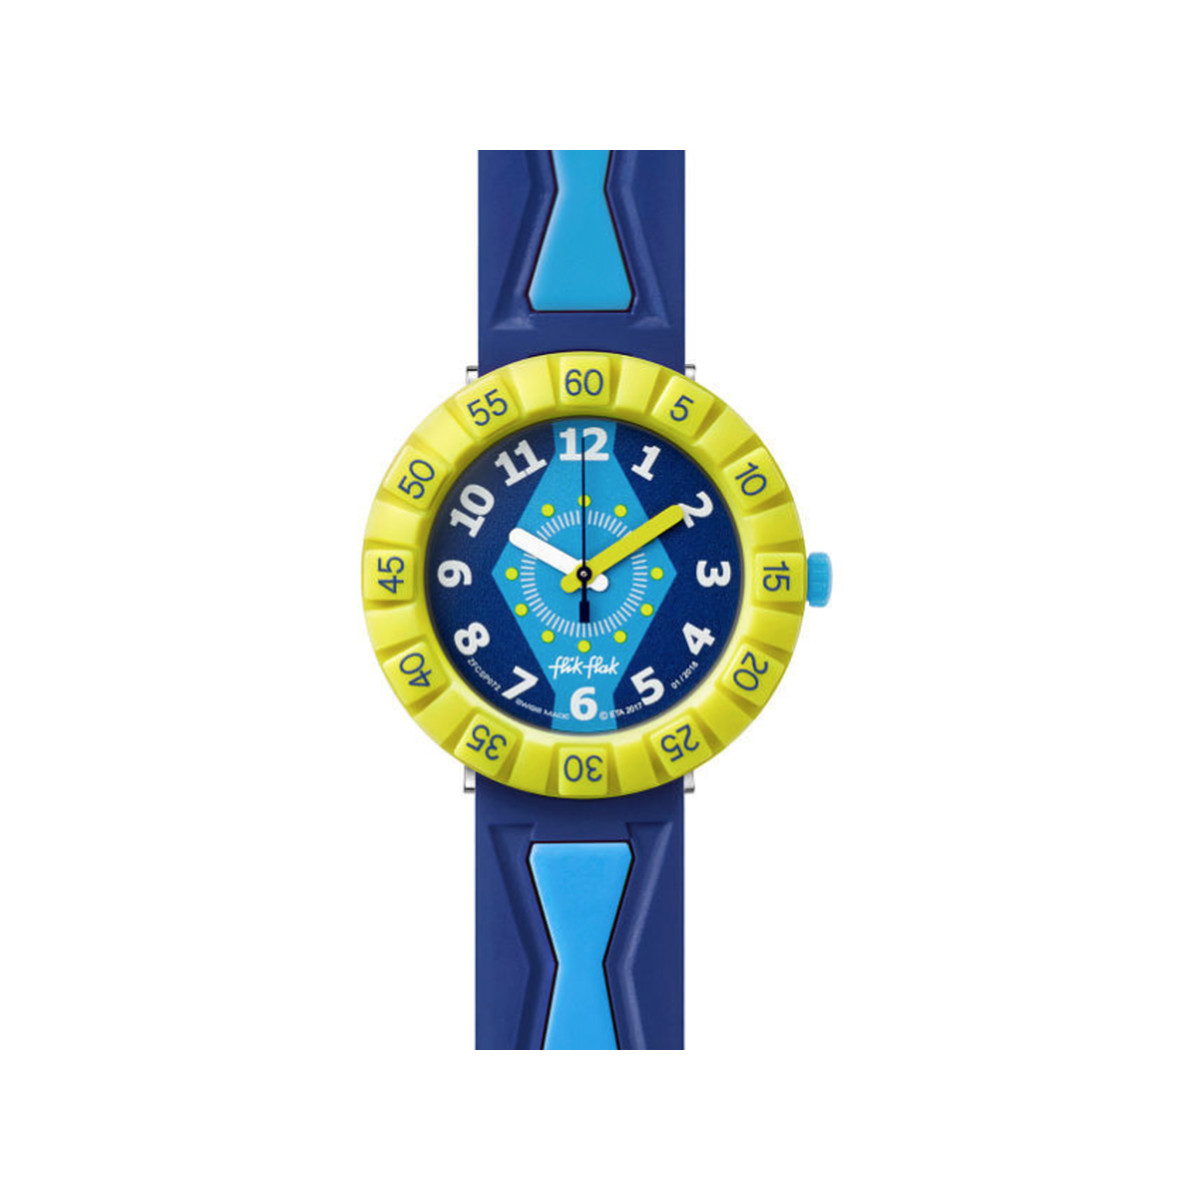 Montre Flik Flak Get it in royal enfant plastique - vue V1